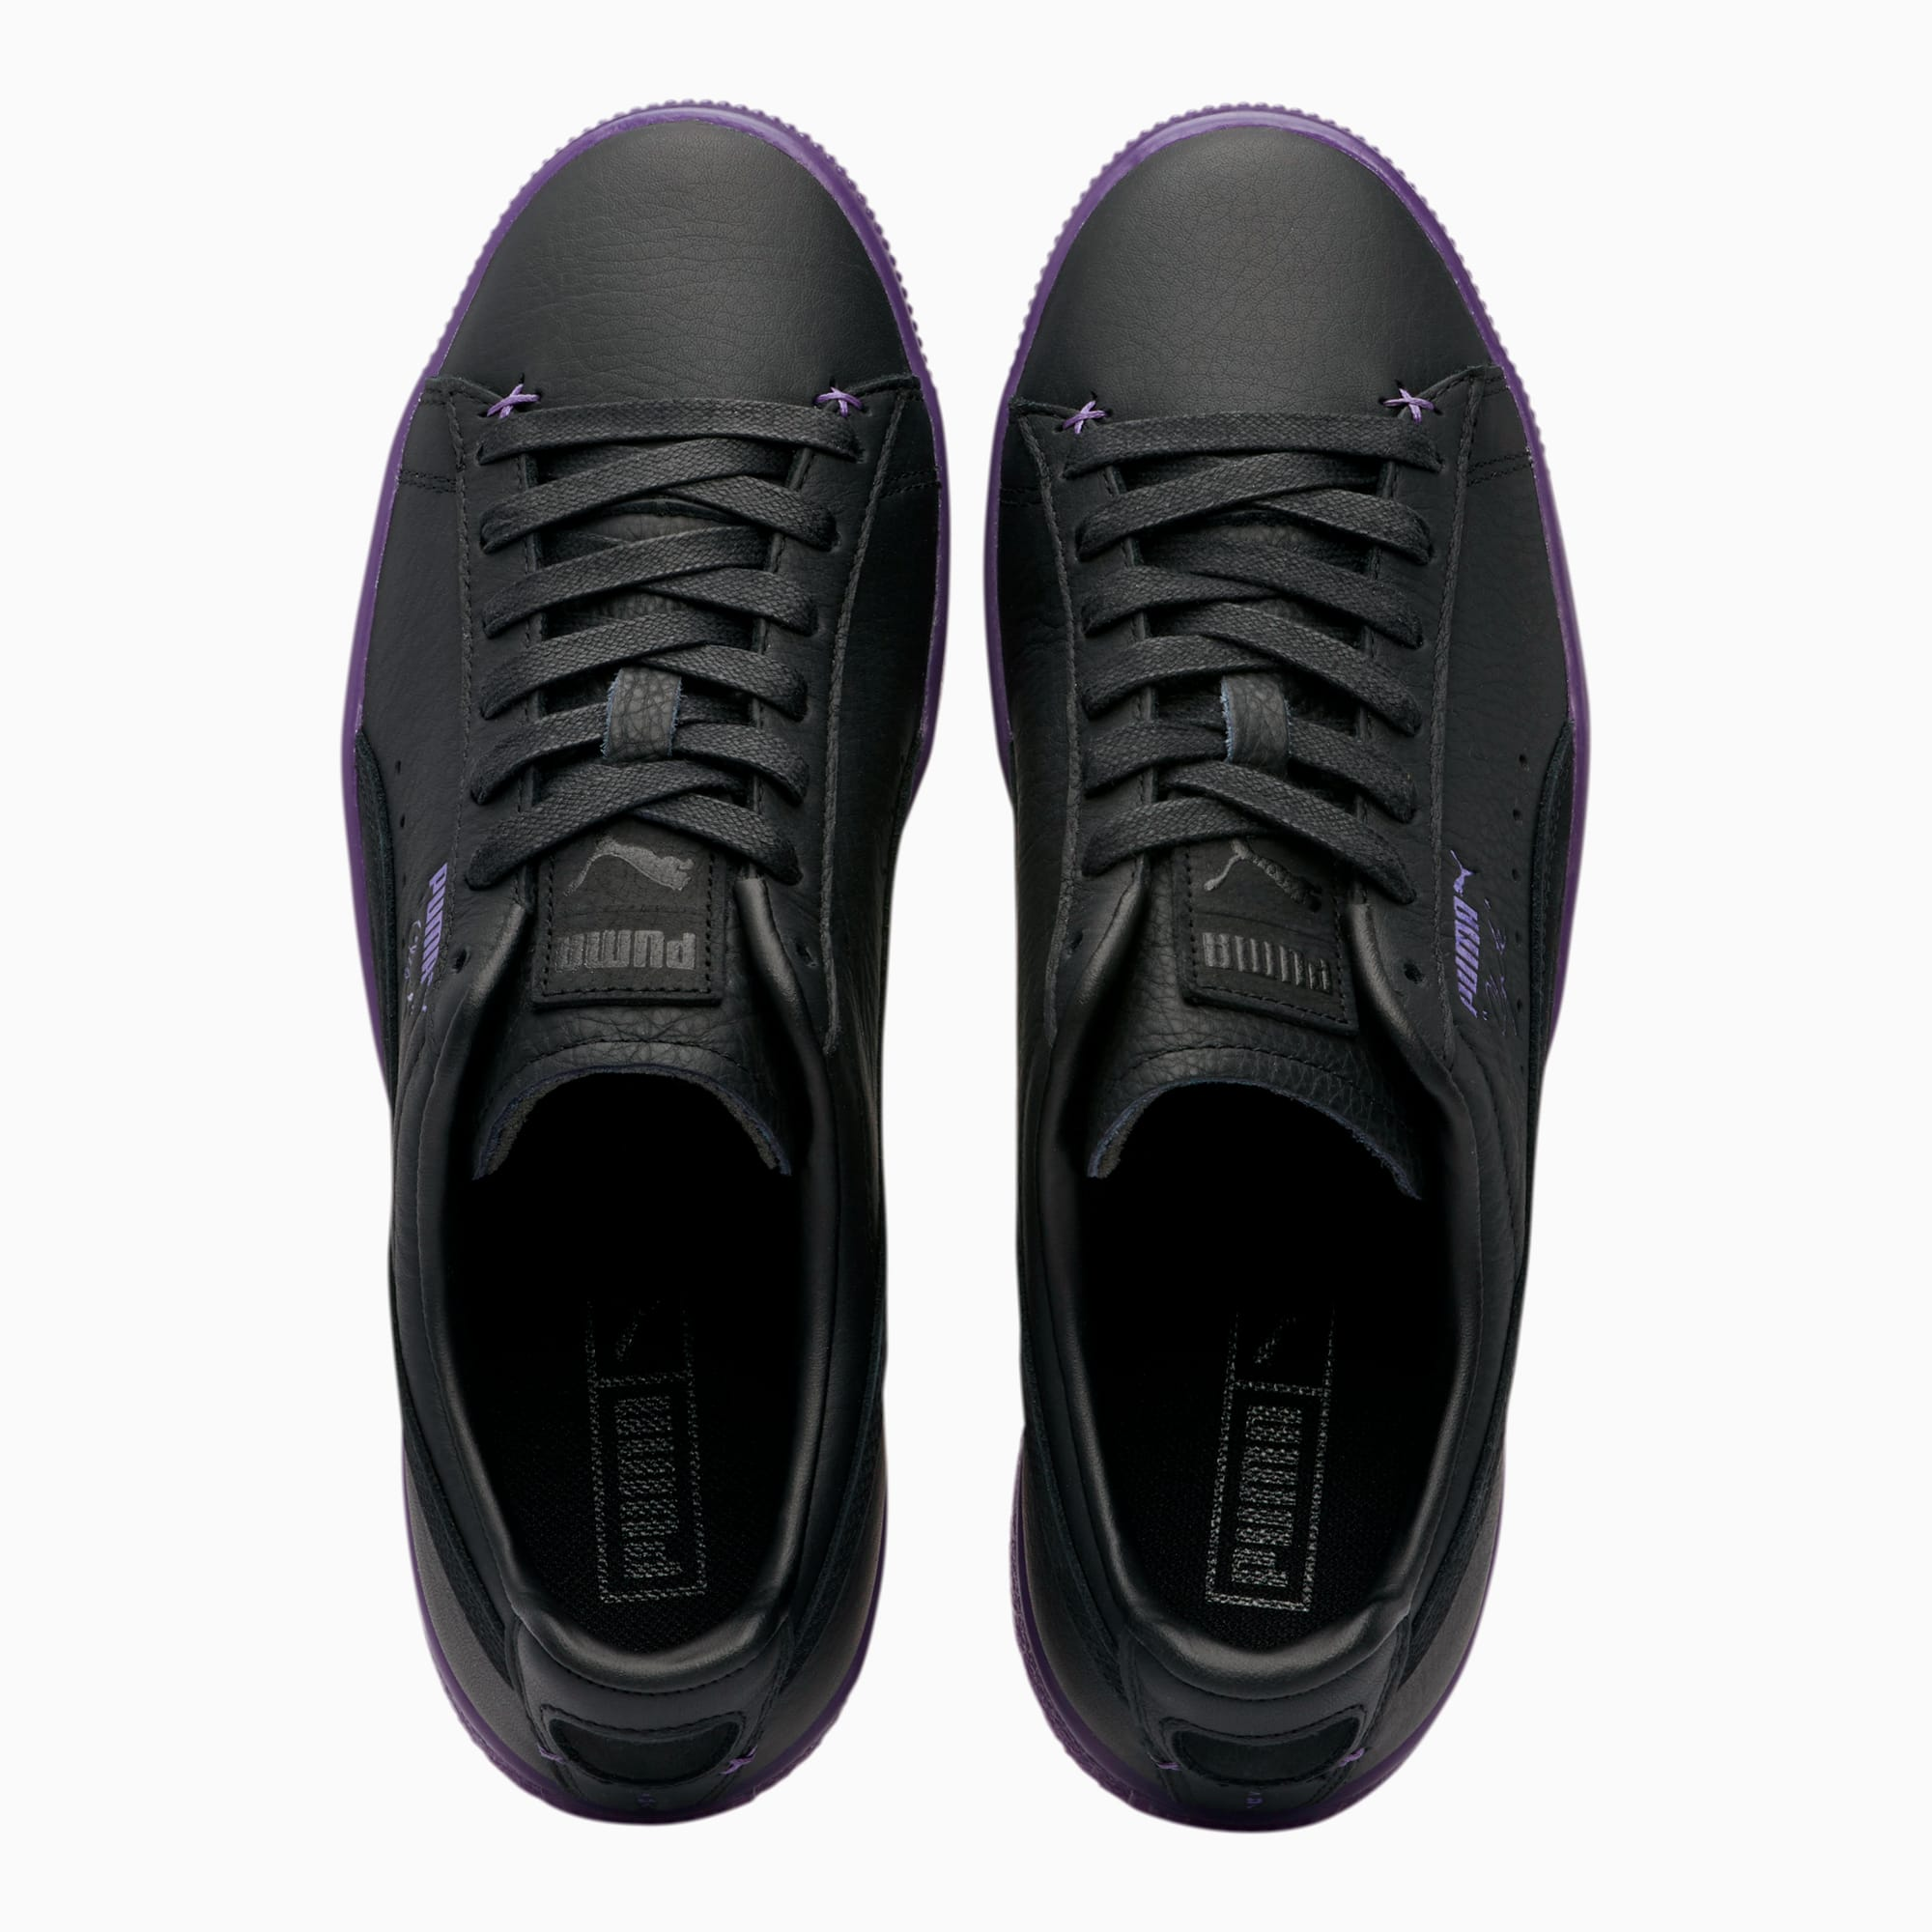 Clyde Black Friday Men's Sneakers